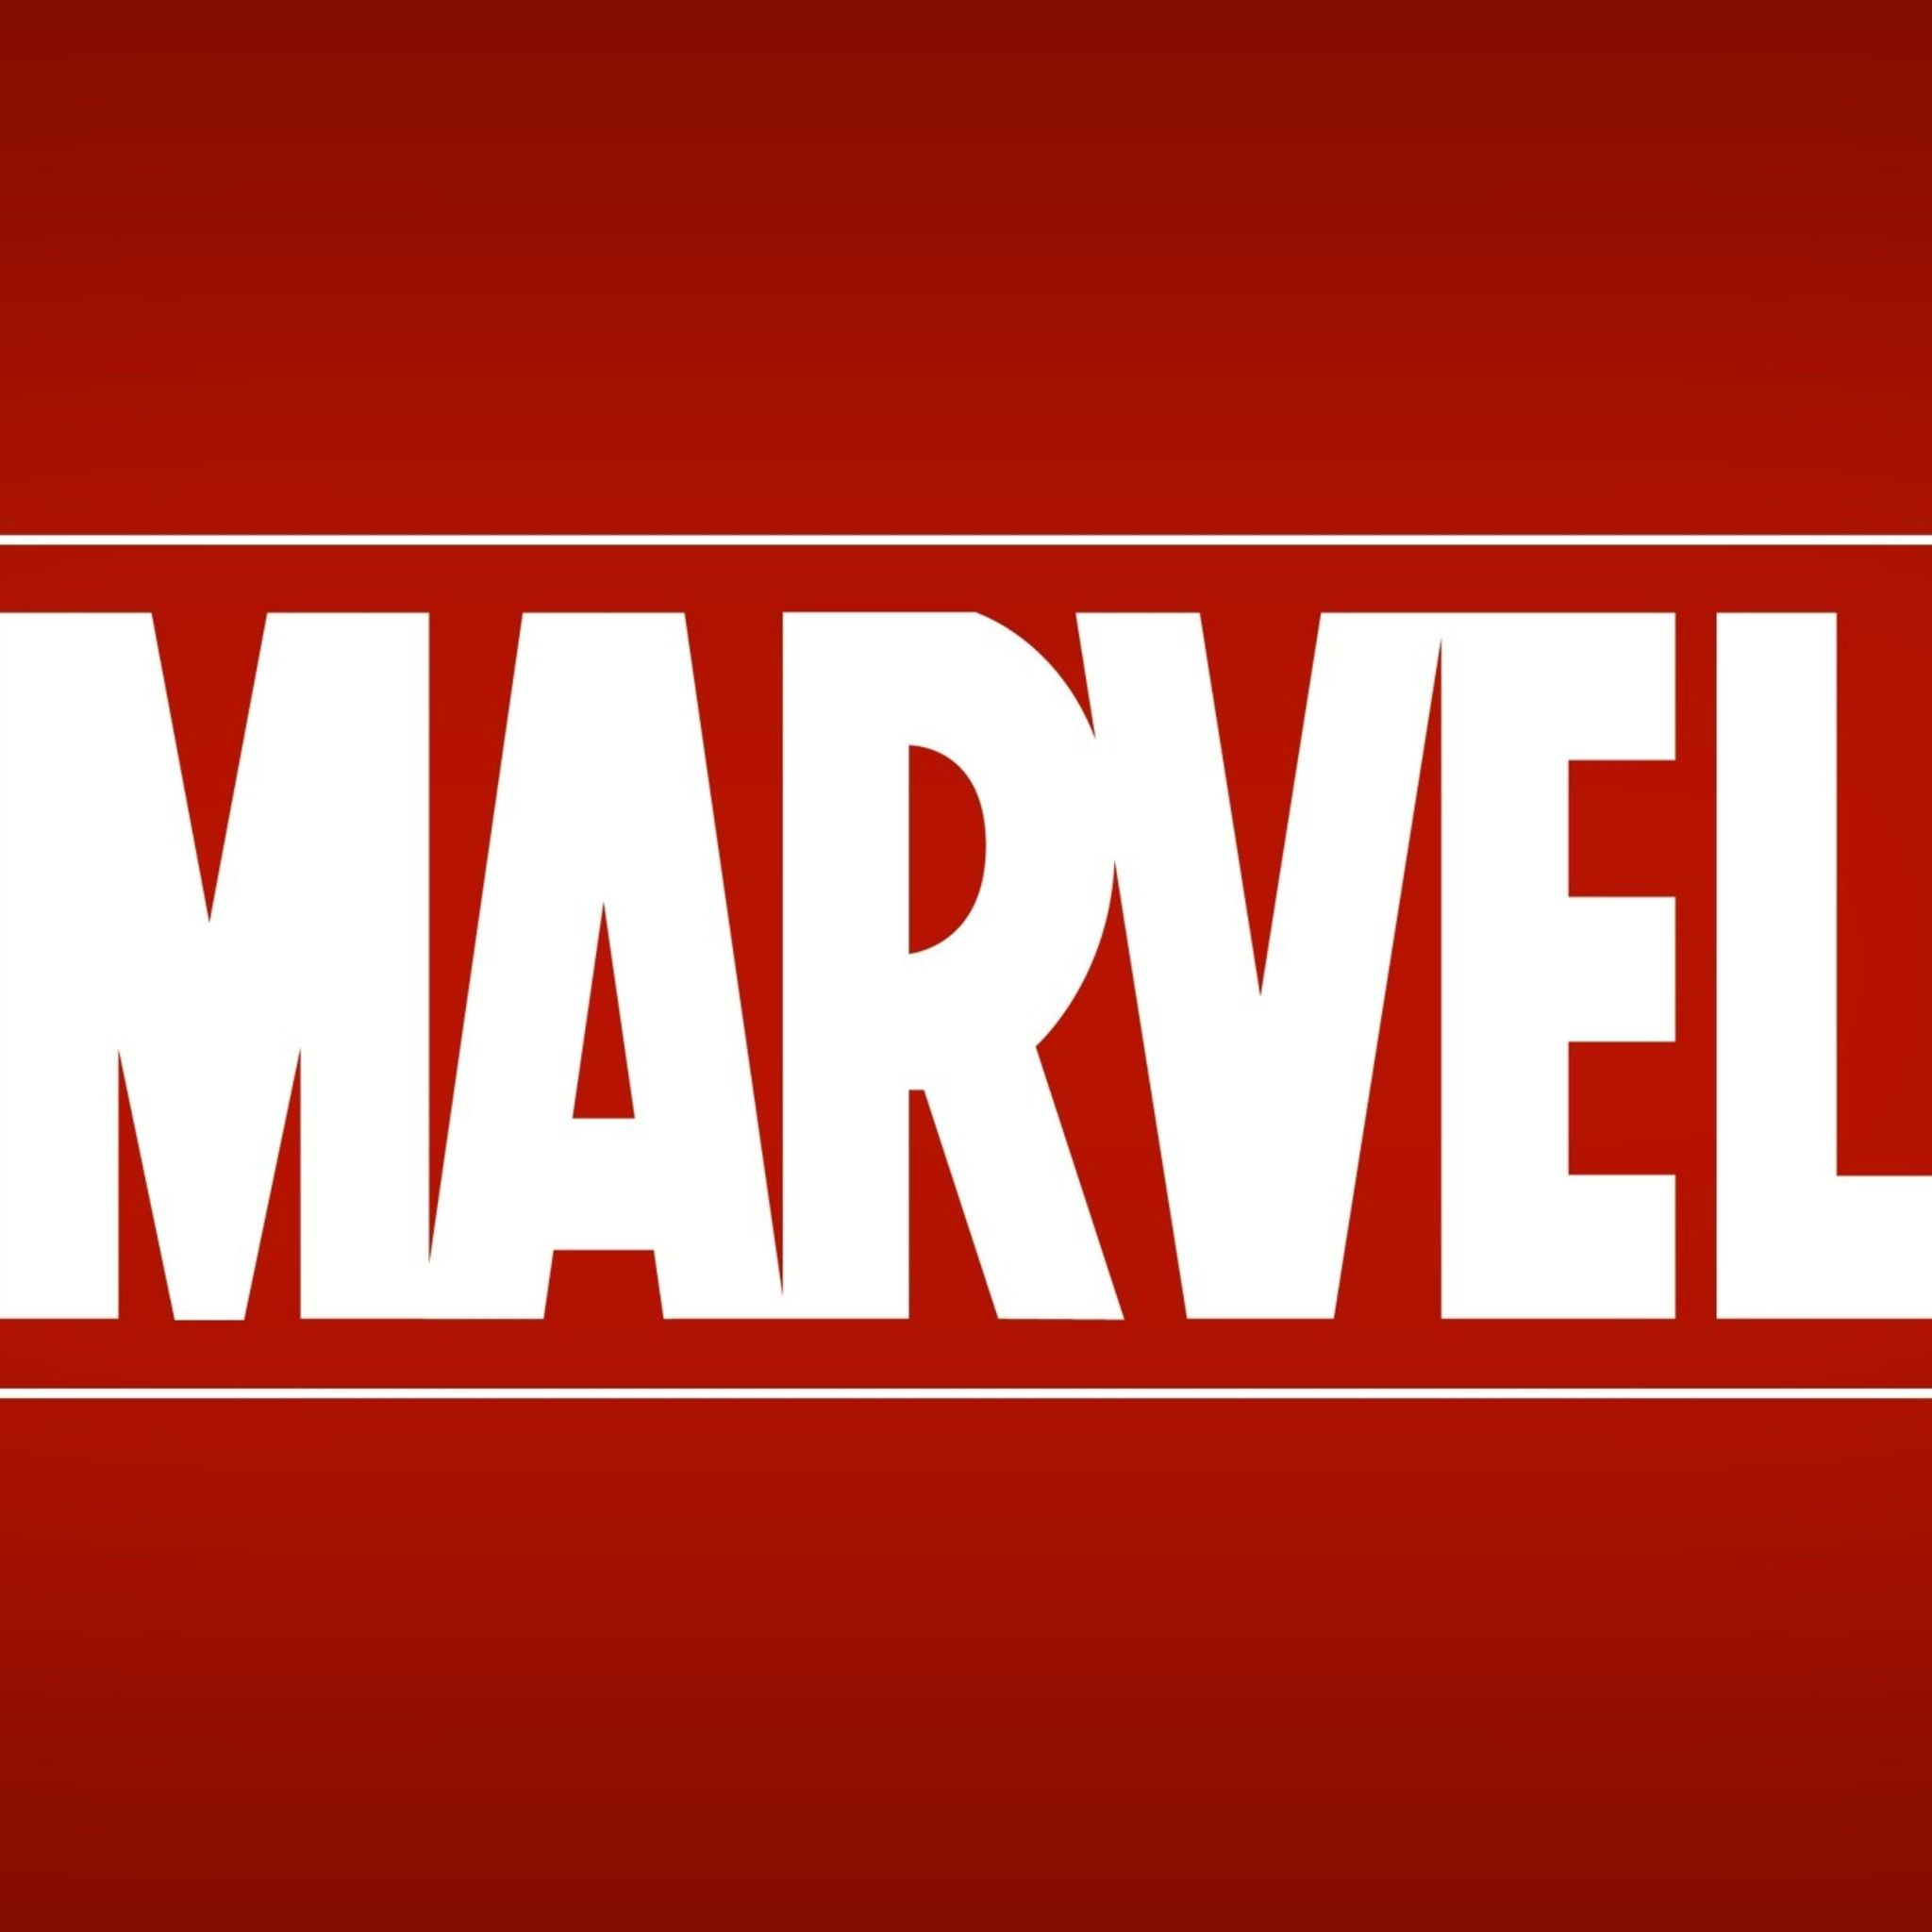 Marvel Logo - 2048x2048 Marvel Comics Logo Ipad Air HD 4k Wallpapers, Images ...